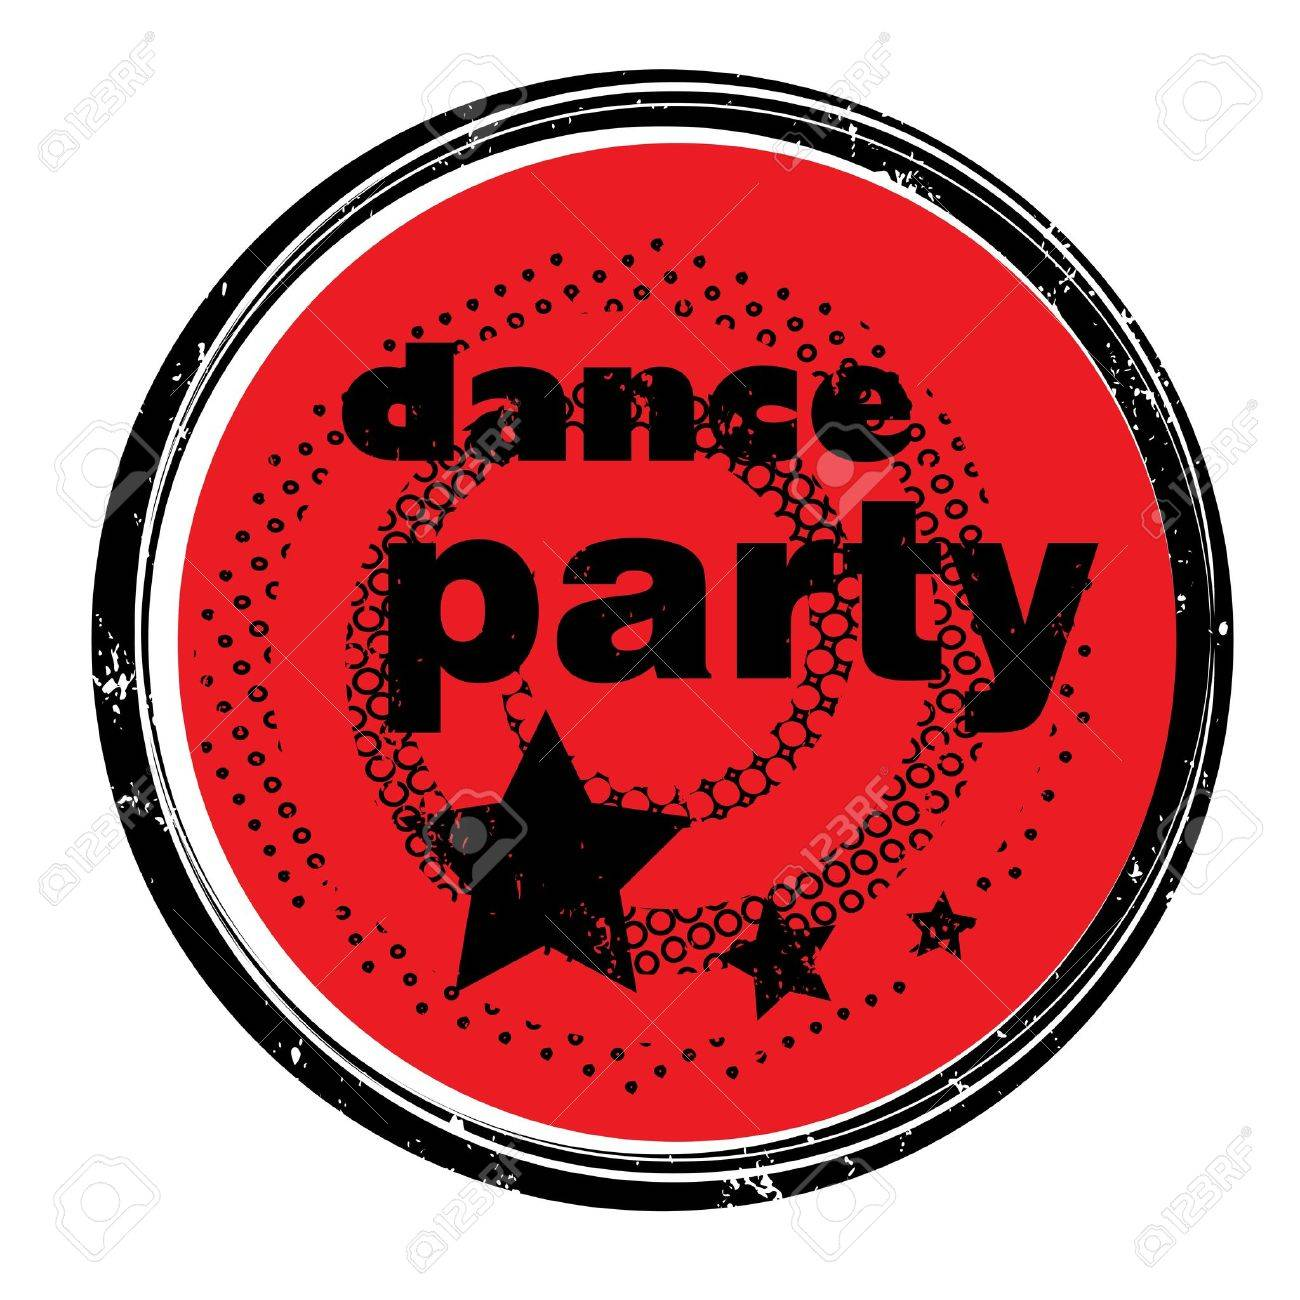 Retro Music Stamp For A Night Club Or Bar Dance Party Seal With